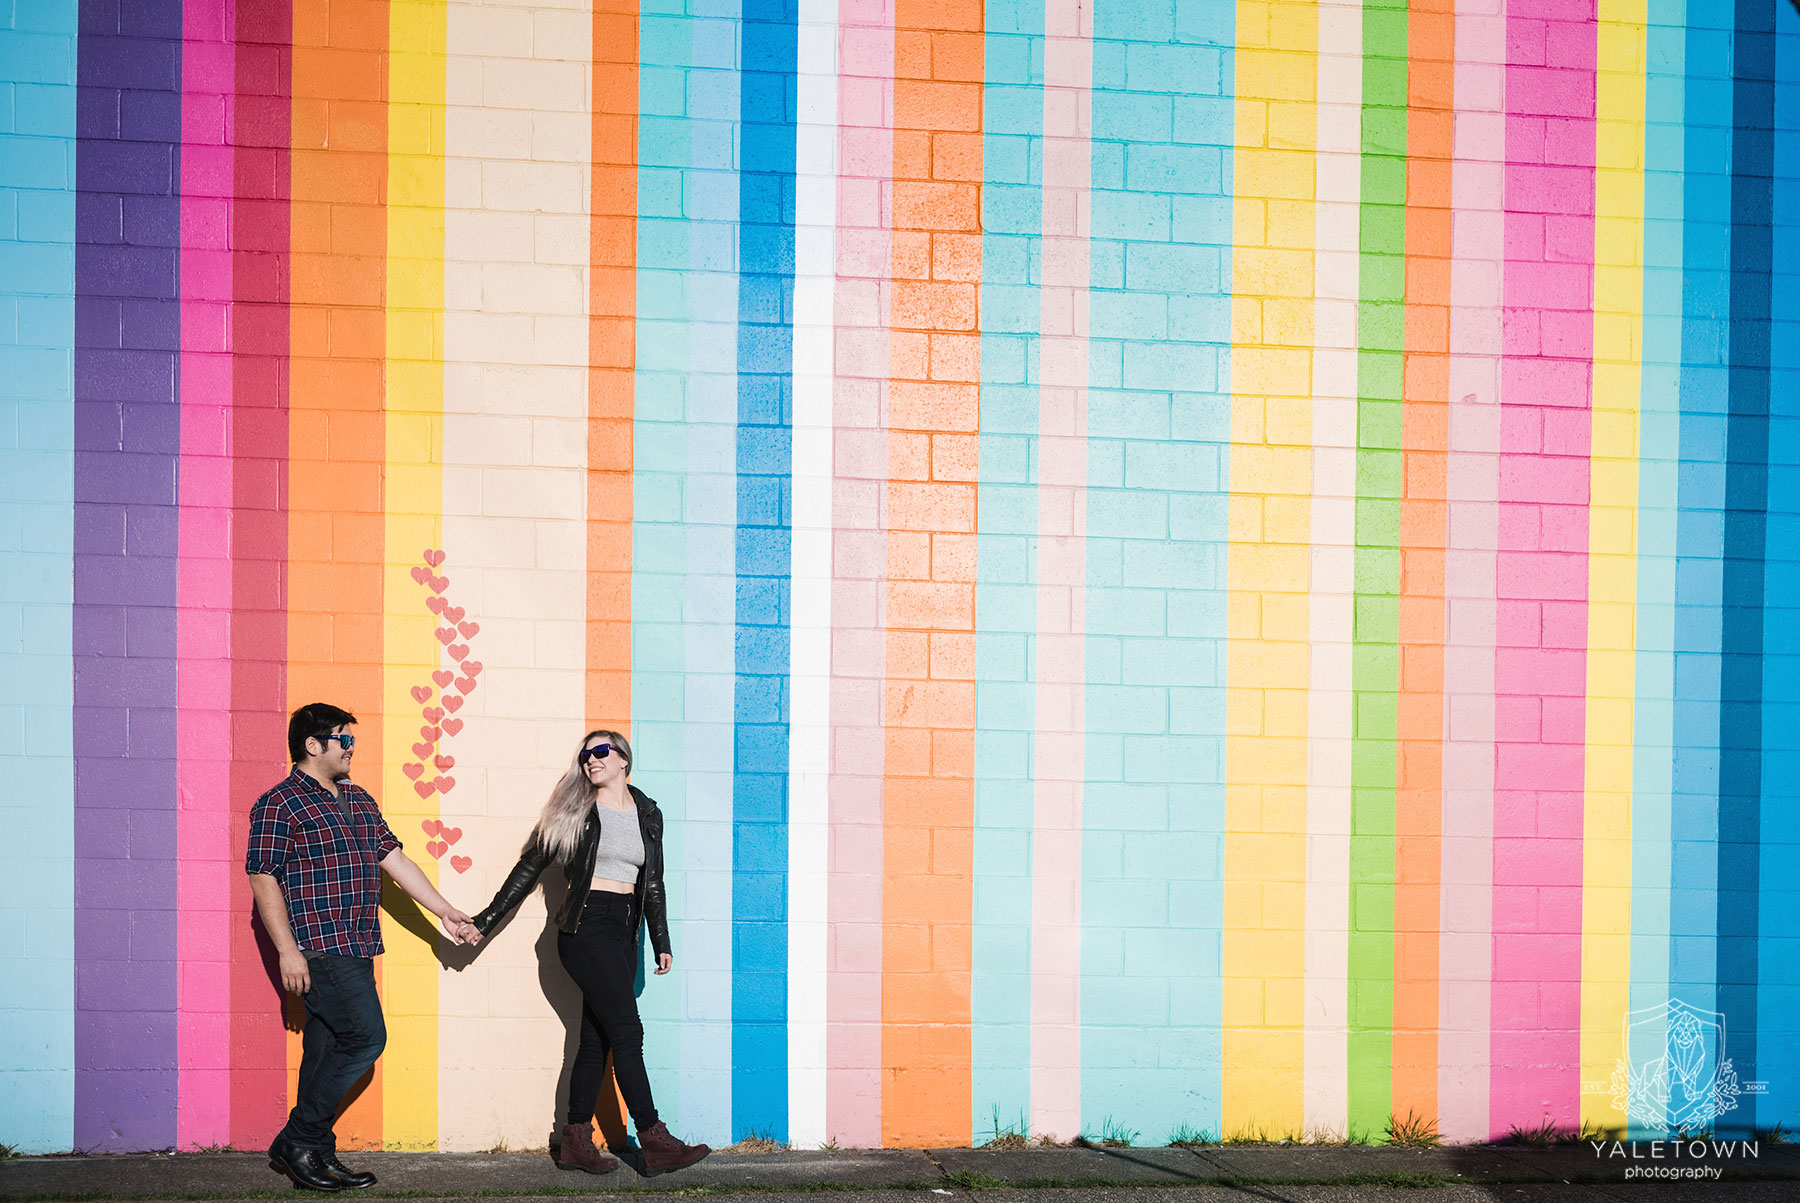 0-Yaletown-Photography-vancouver-urban-mural-engagement-photo (1).jpg